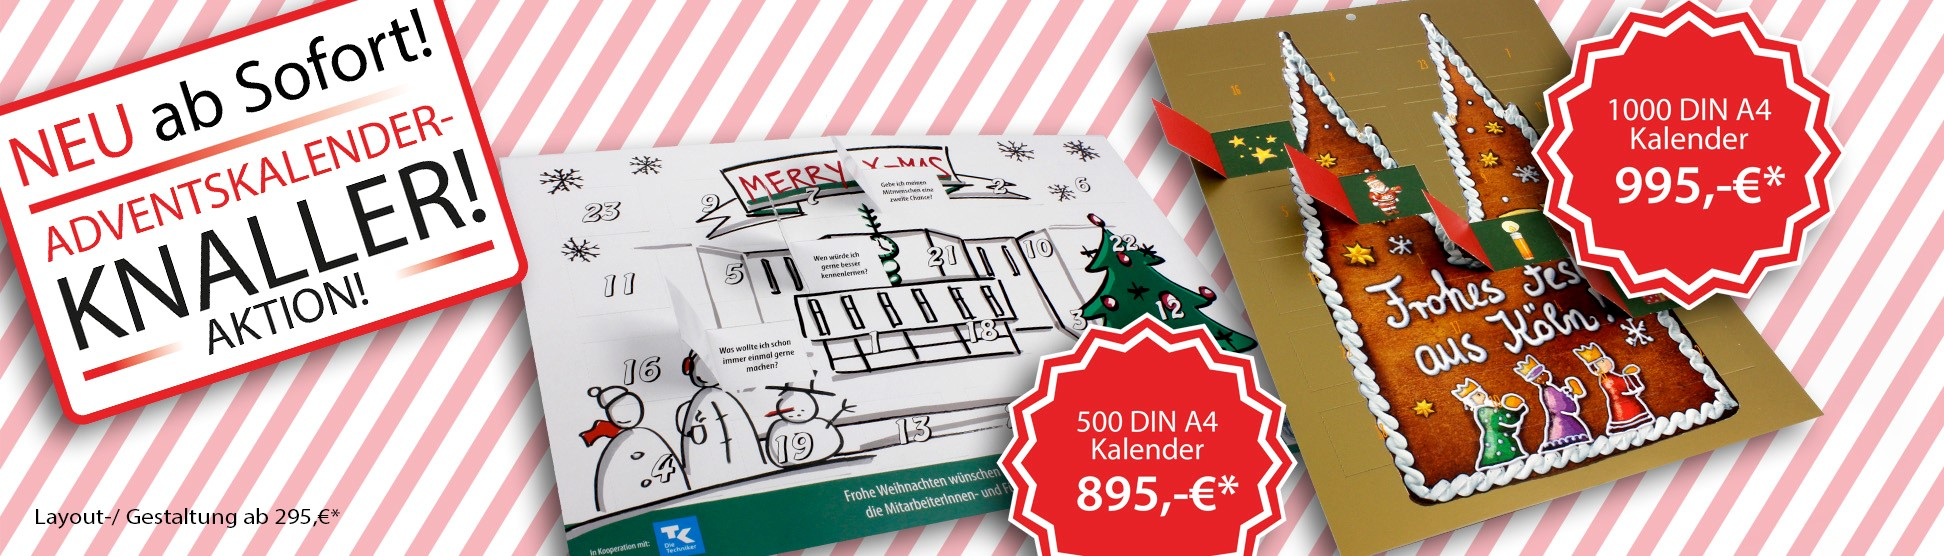 Tuerchenkalender_Adventskalender_Druckerei